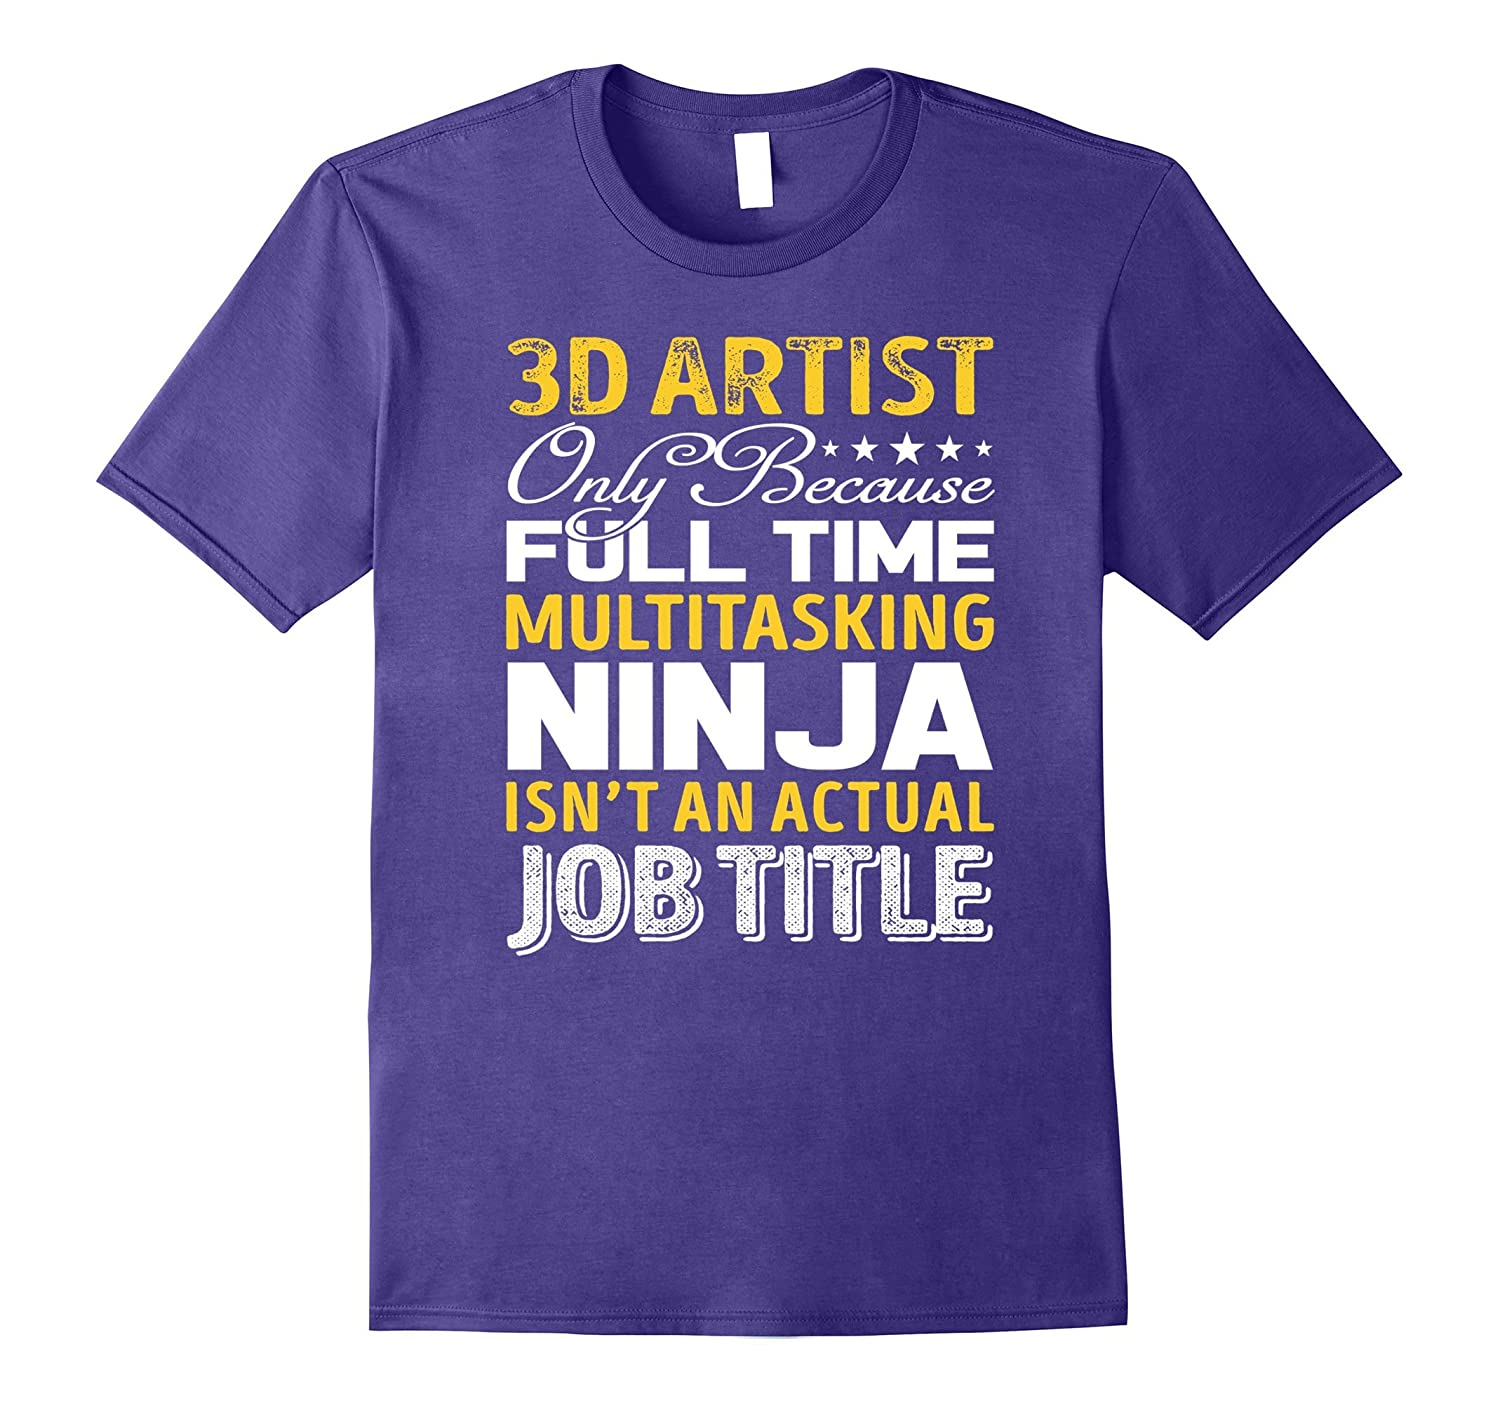 3D artist Is Not An Actual Job Title TShirt-TJ